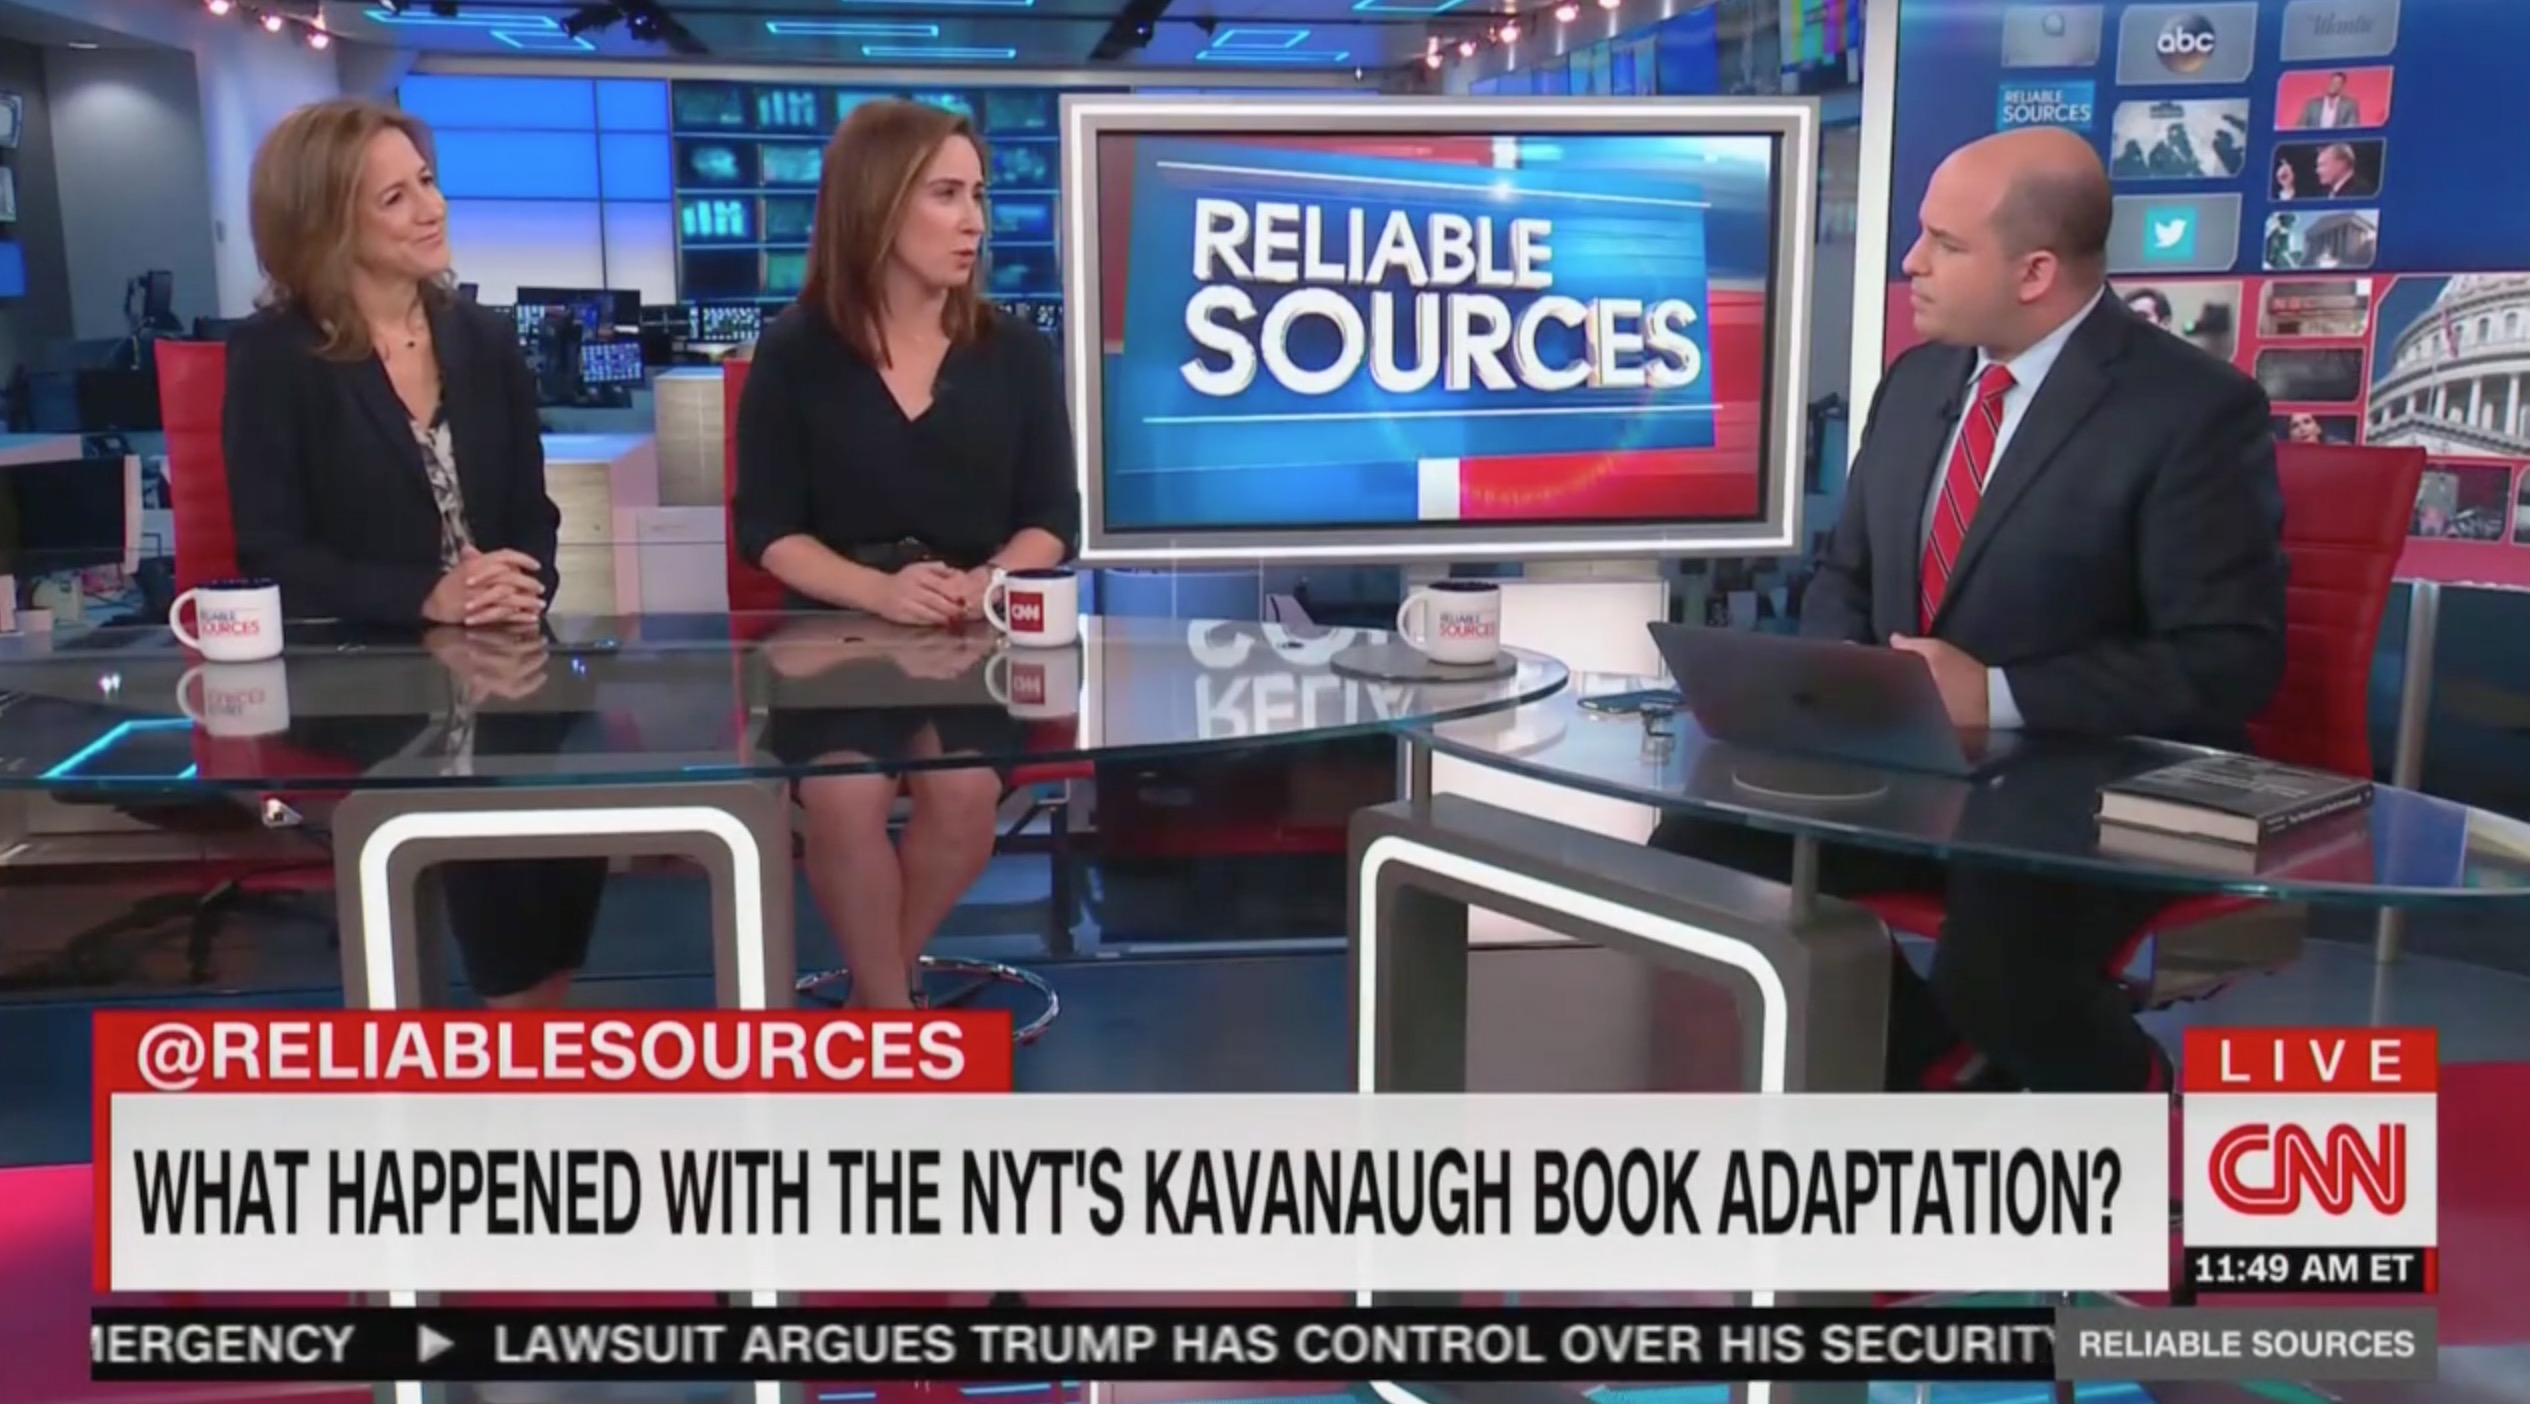 CNN's Stelter Questions NYT Reporters on Kavanaugh Book: 'What Went Wrong' With the Adaptation?